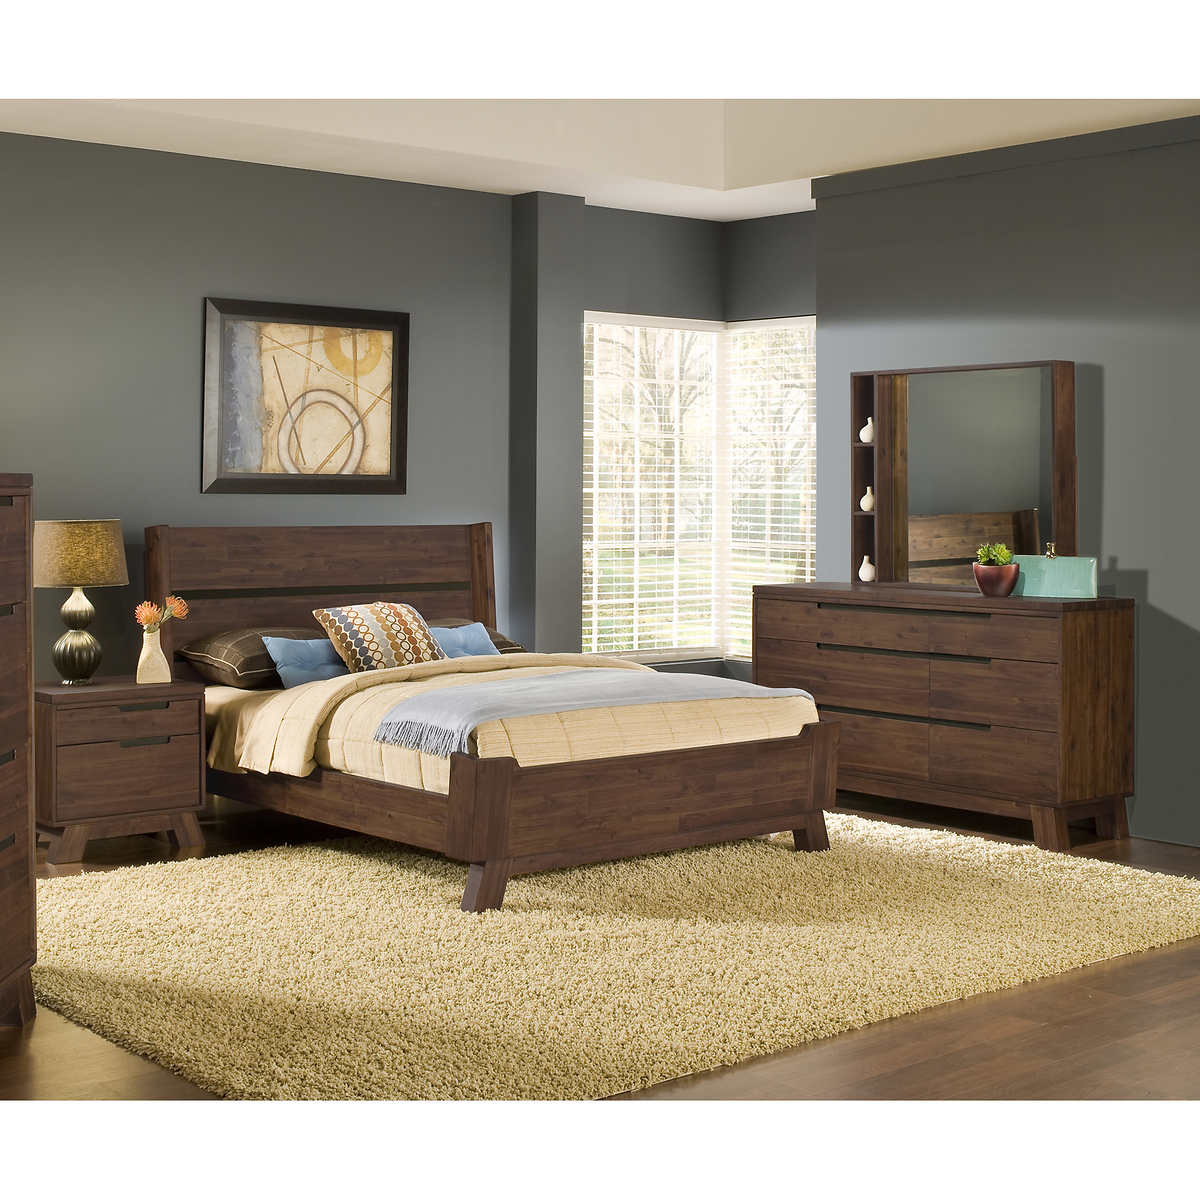 Woodrow Road 5-piece King Bedroom Set